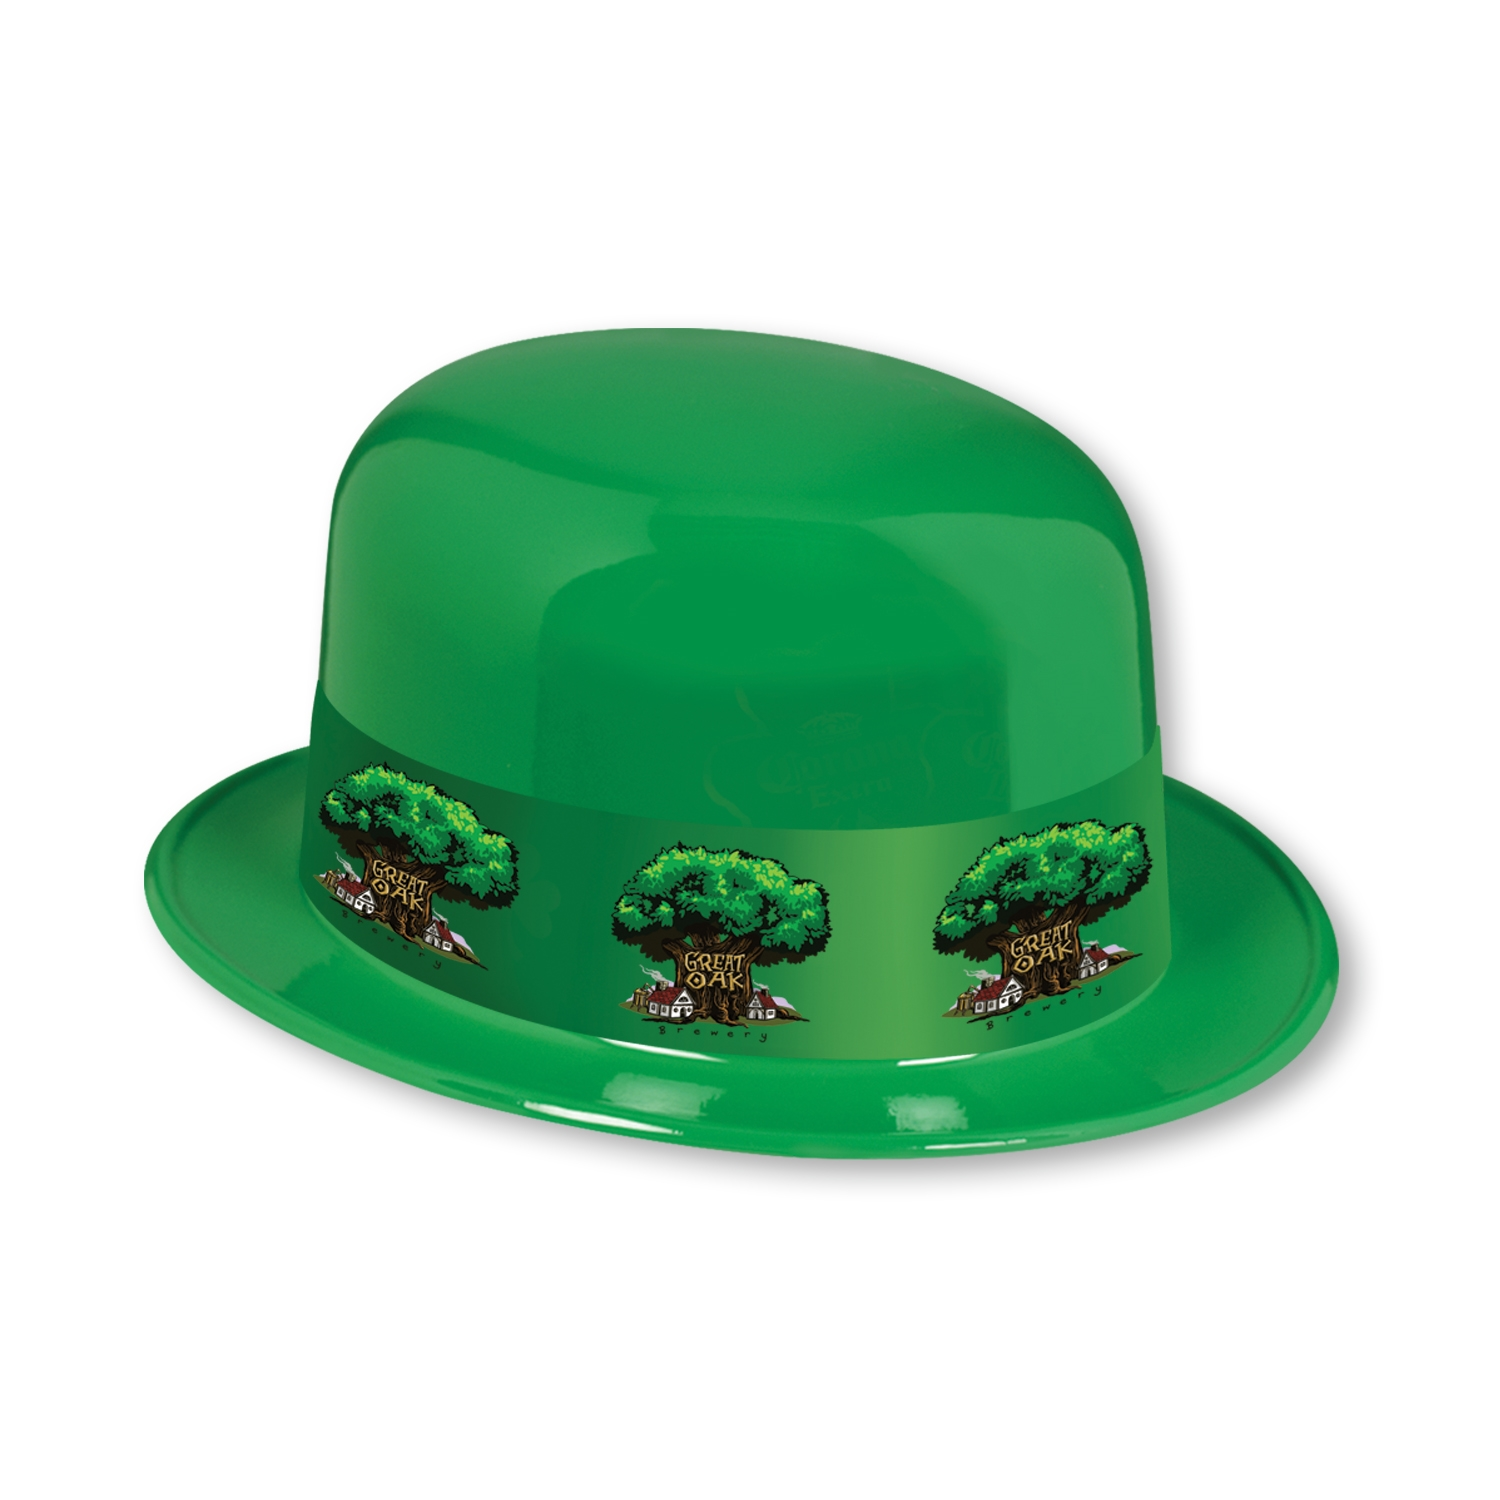 Custom Plastic Derbies with Imprinted Band st. patricks day, custom, plastic, derbies, hat, imprinted band